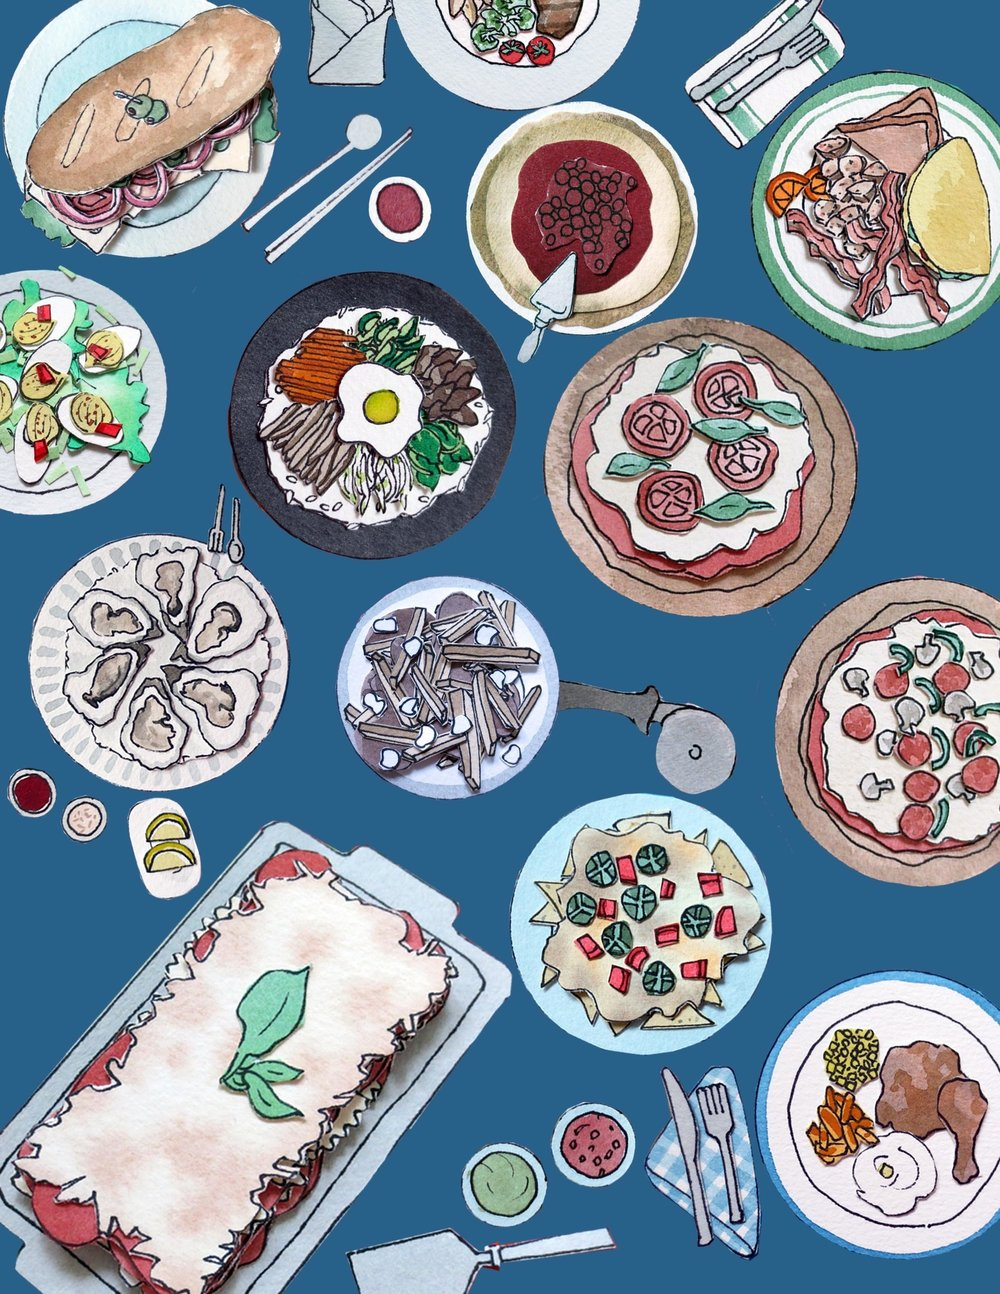 paper food collage tc.jpg